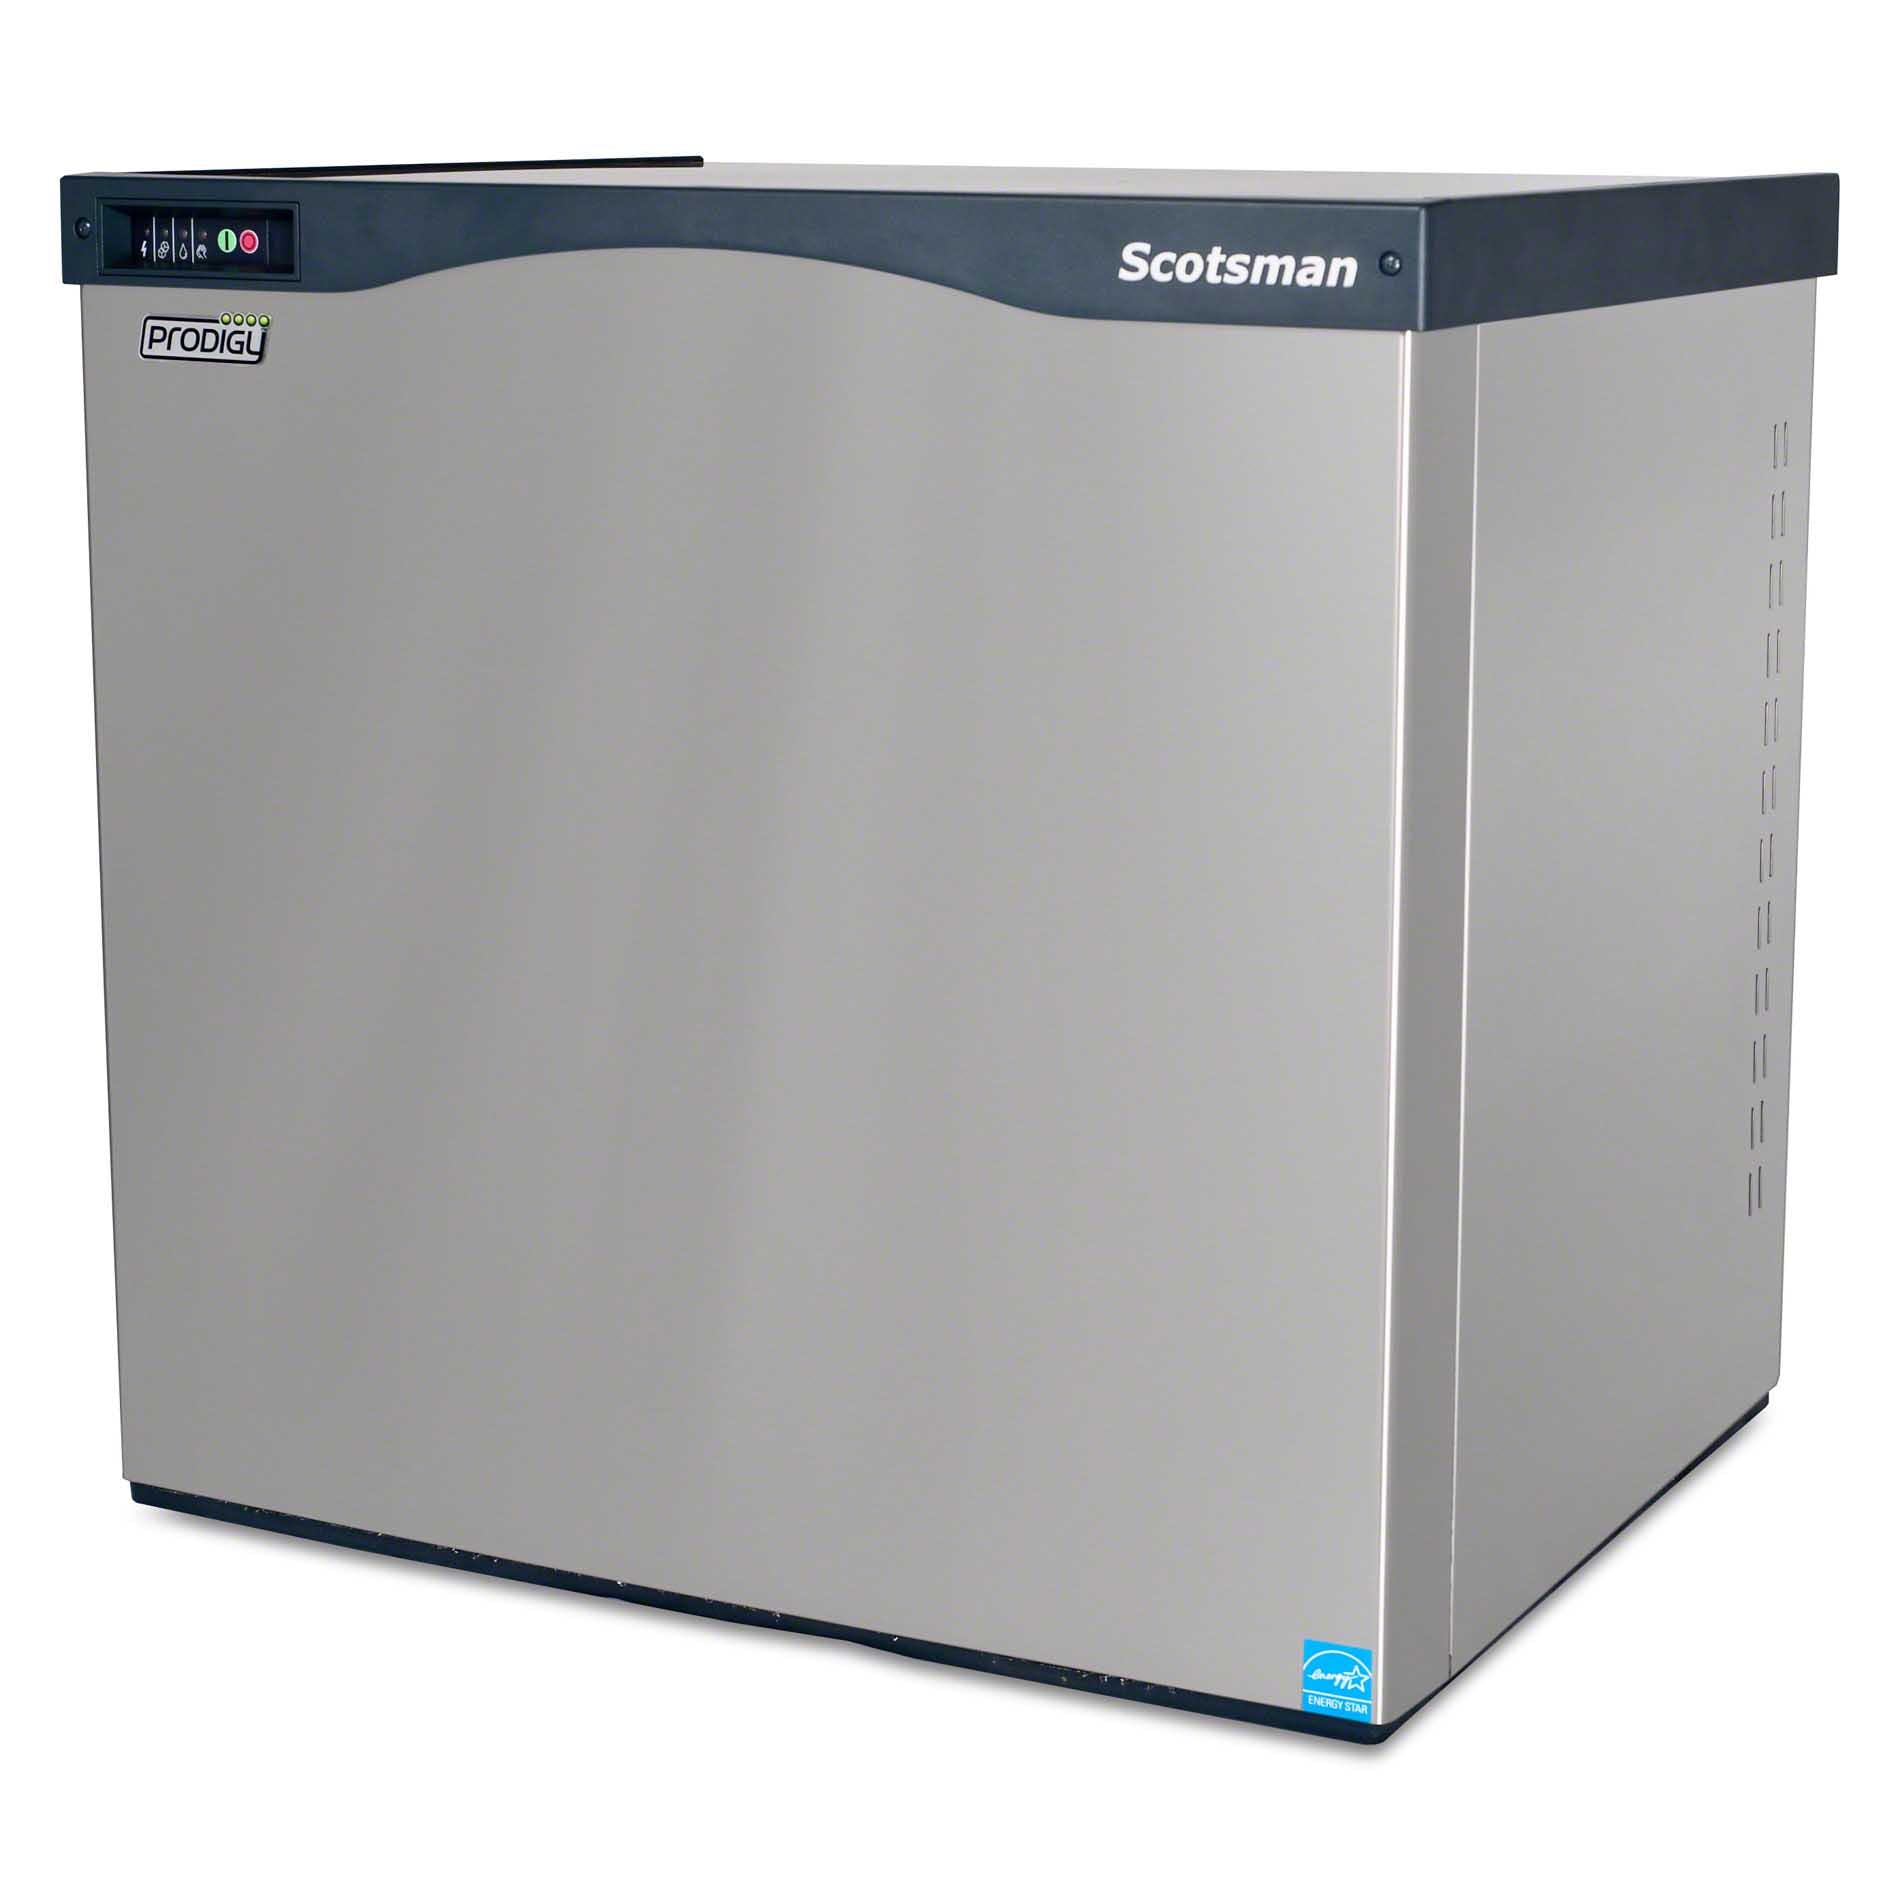 Scotsman - C0830MA-3A 905 lb Full Size Cube Ice Machine - Prodigy Series - sold by Food Service Warehouse